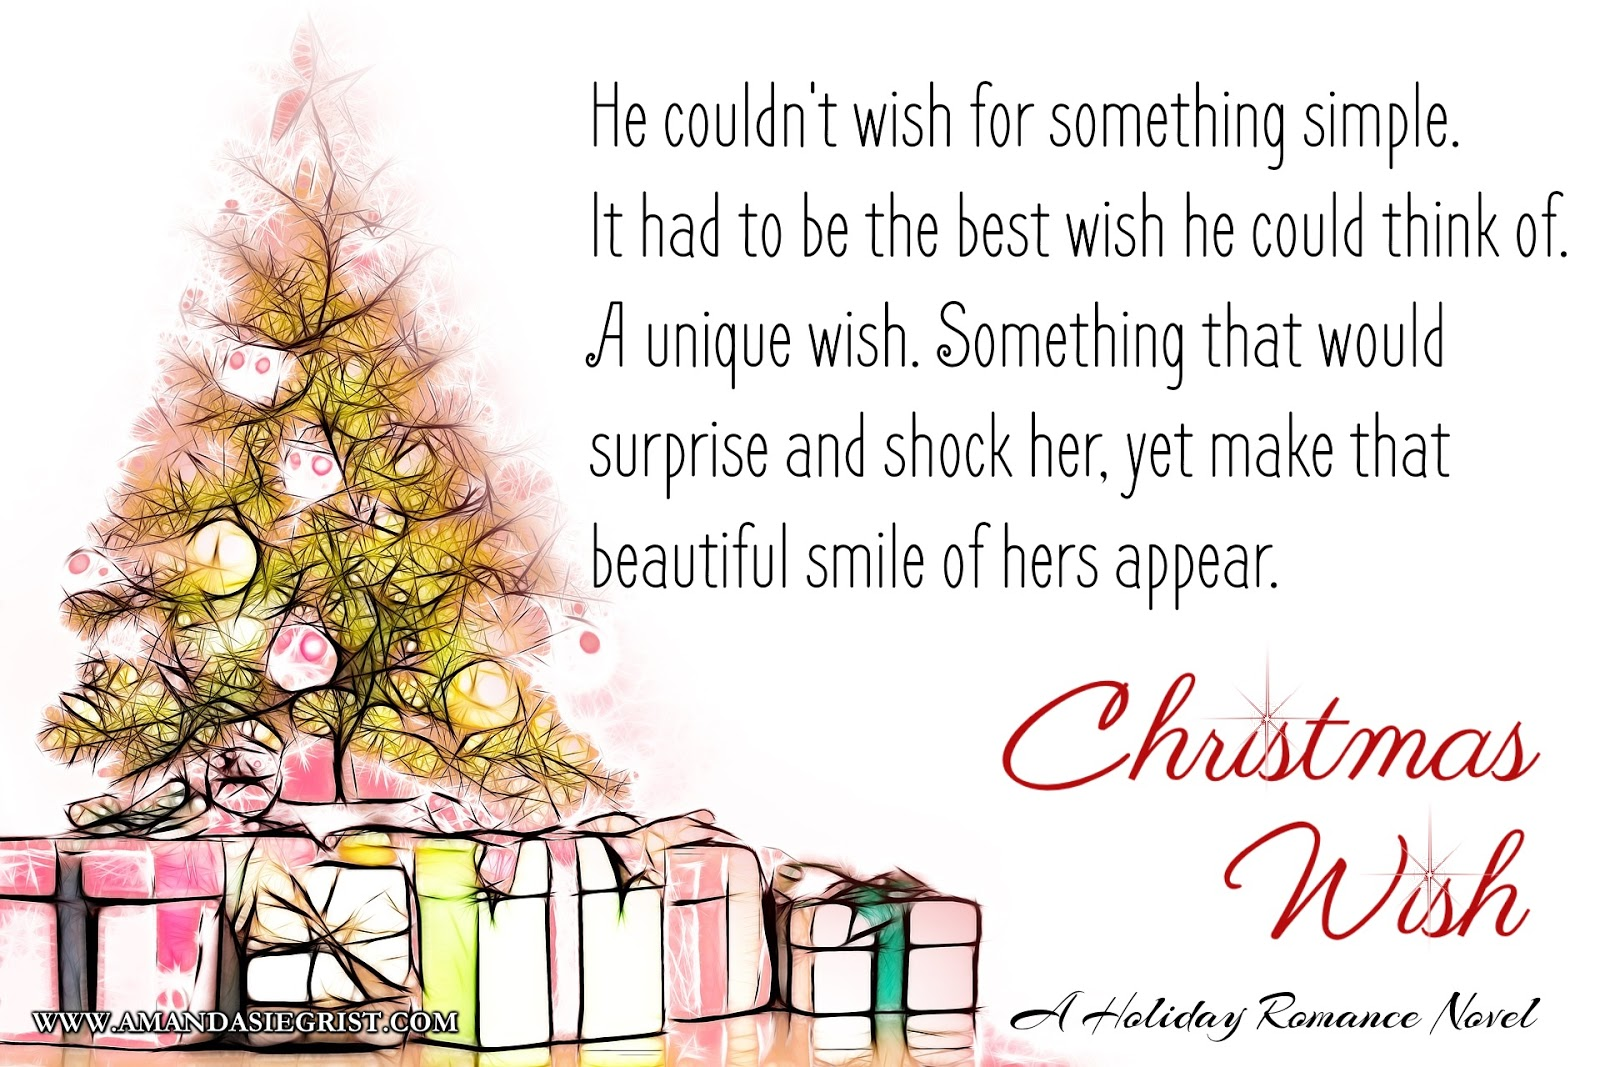 Romance Reviews Today Blog: Promo: CHRISTMAS WISH by AMANDA SIEGRIST